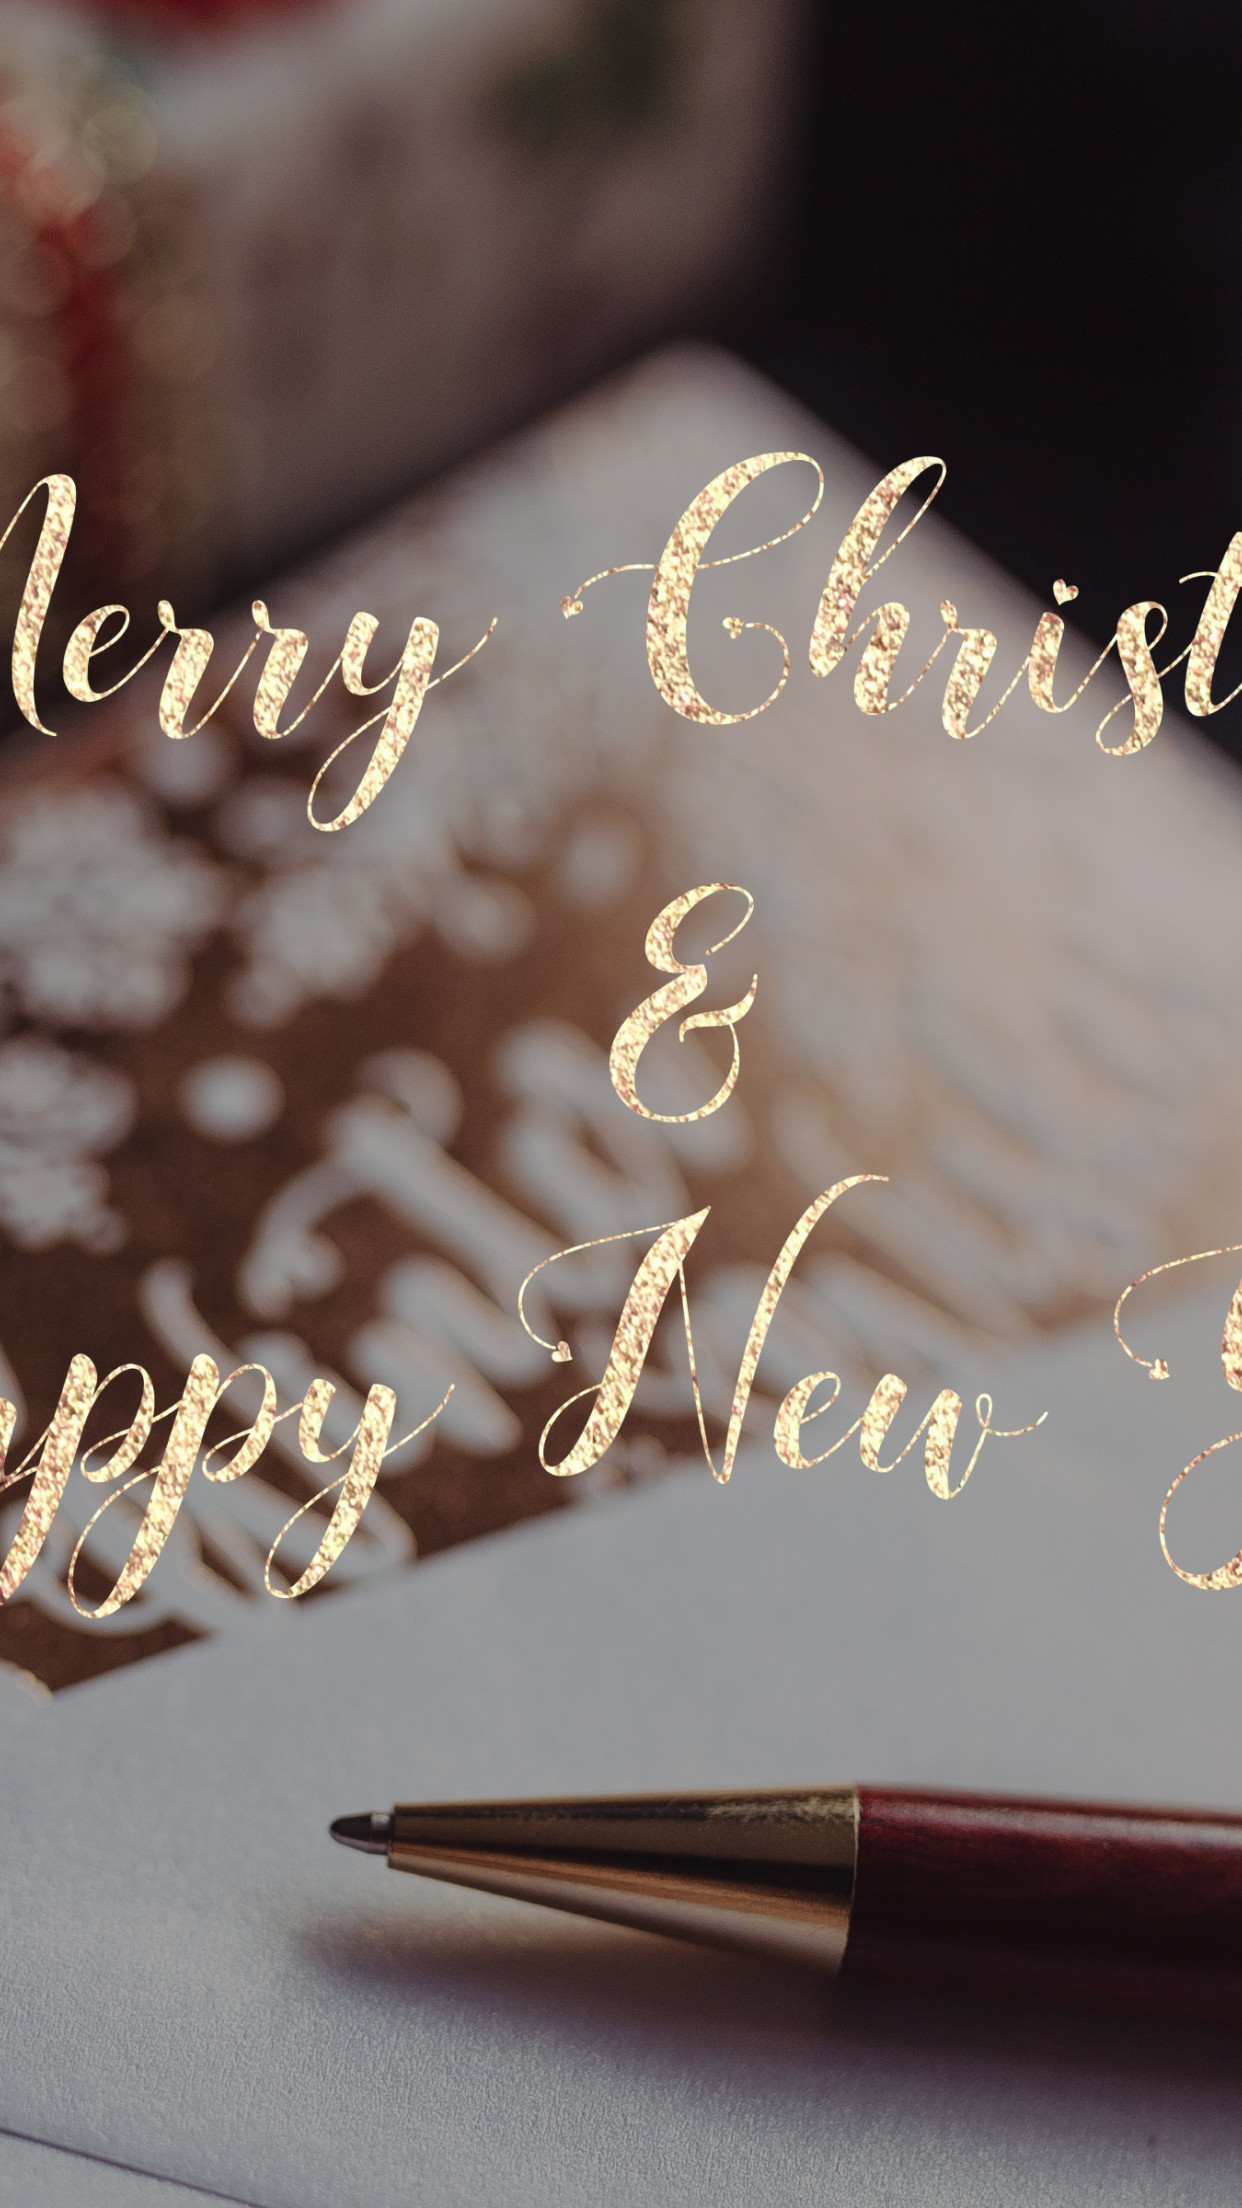 Merry Christmas and Happy New Year 2020 wallpaper 1242x2208